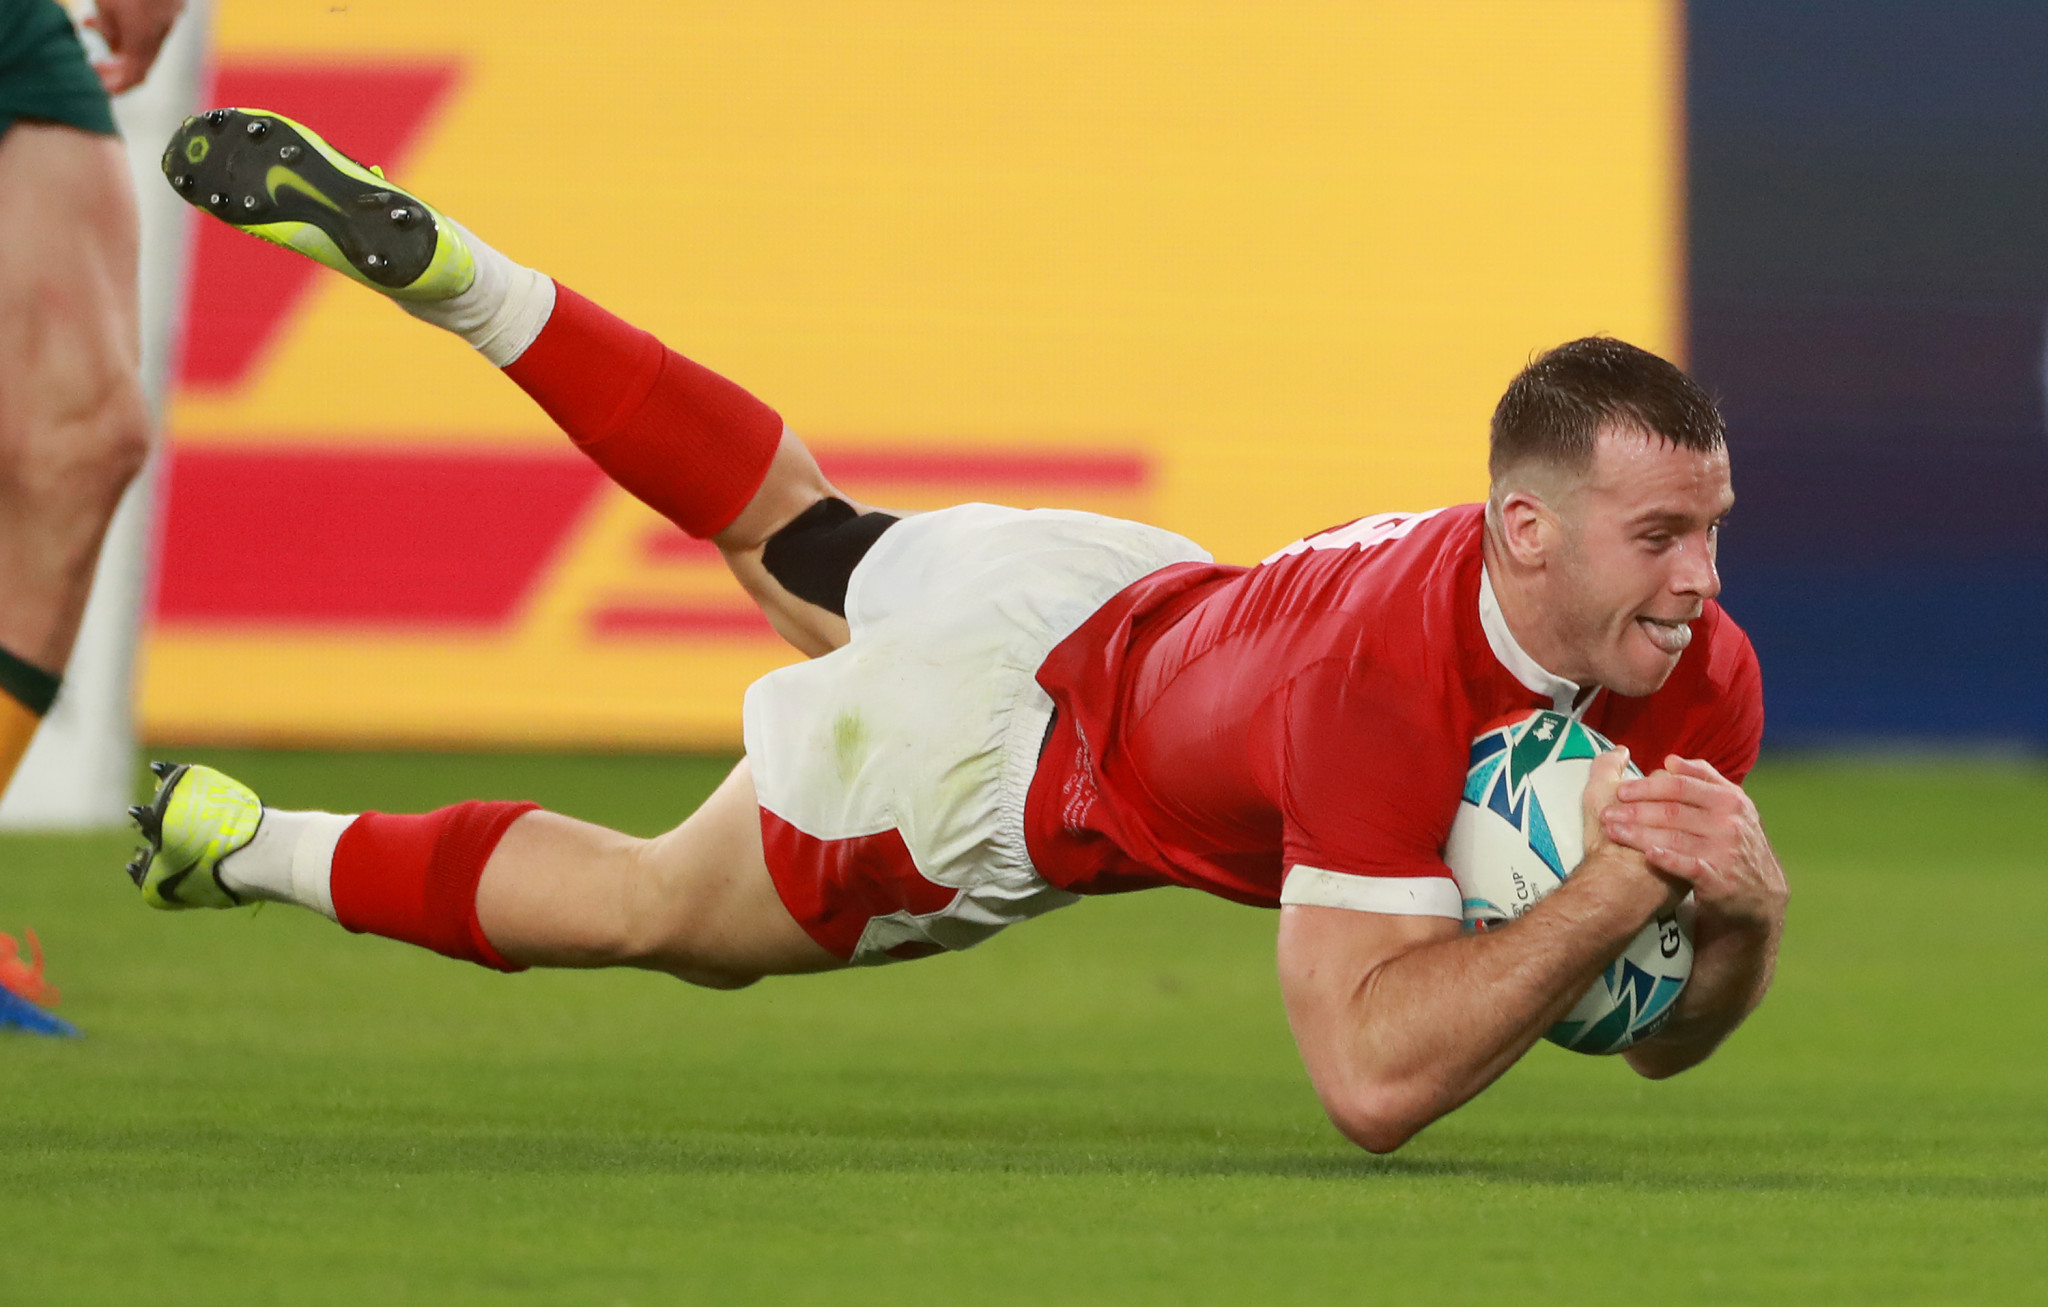 Gareth Davies went over the whitewash as Wales took control in the first half ©Getty Images